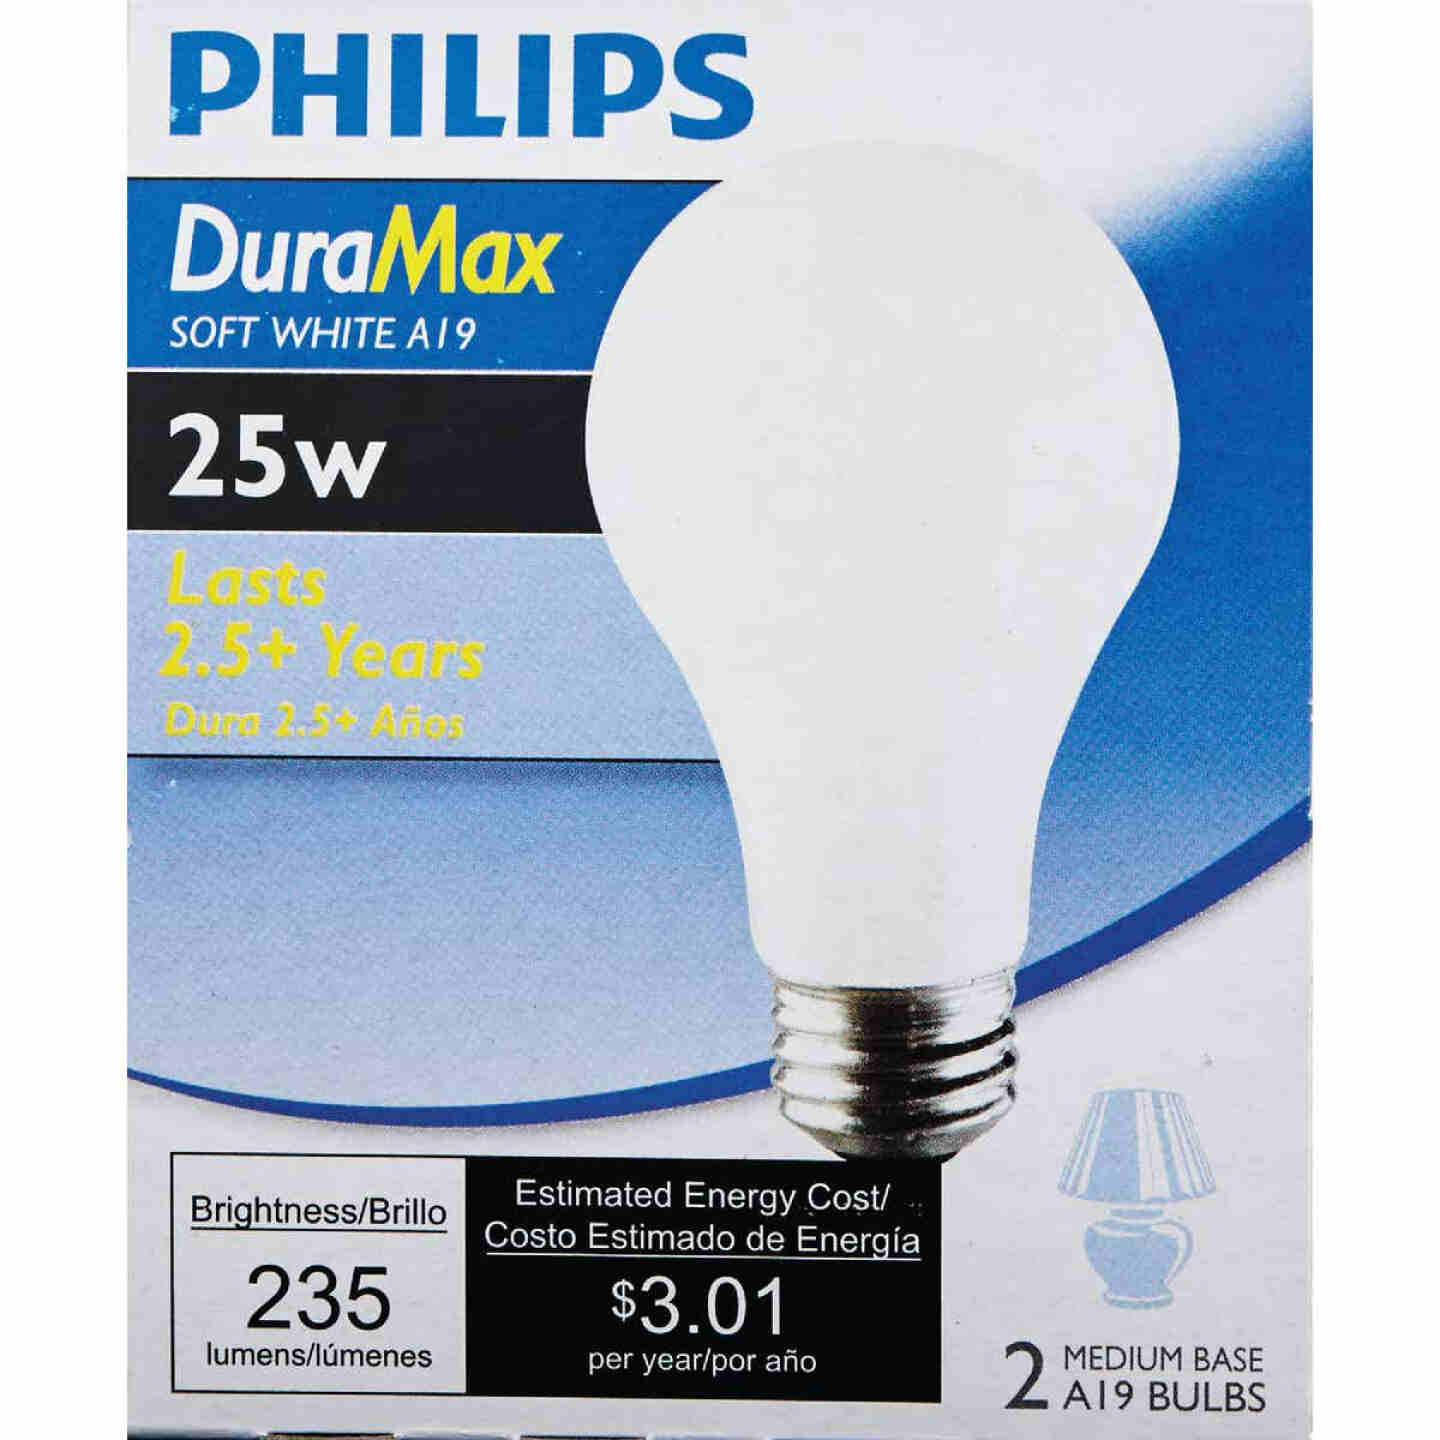 Philips Duramax 25W Frosted Soft White Medium Base A19 Incandescent Light Bulb (2-Pack) Image 2